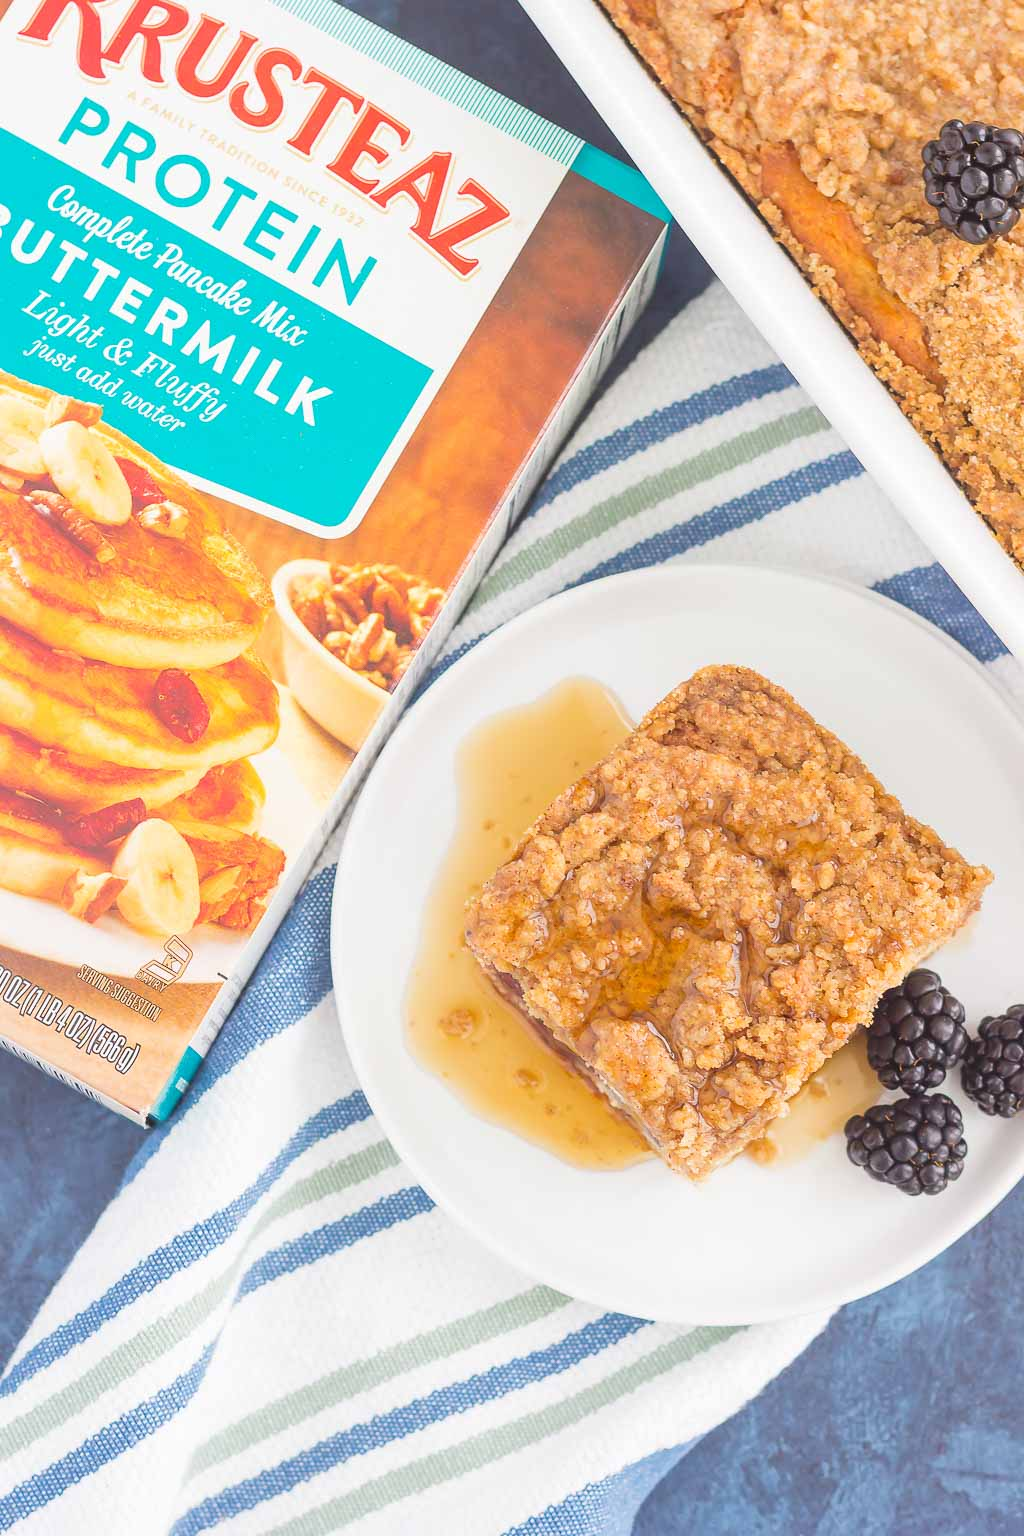 This Blackberry Streusel Pancake Casserole is an easy dish that the whole family will enjoy. Fluffy, buttermilk pancake batter is studded with fresh blackberries and then topped with cinnamon streusel. Baked until golden and bursting with flavor, this comfort dish is the ultimate breakfast!